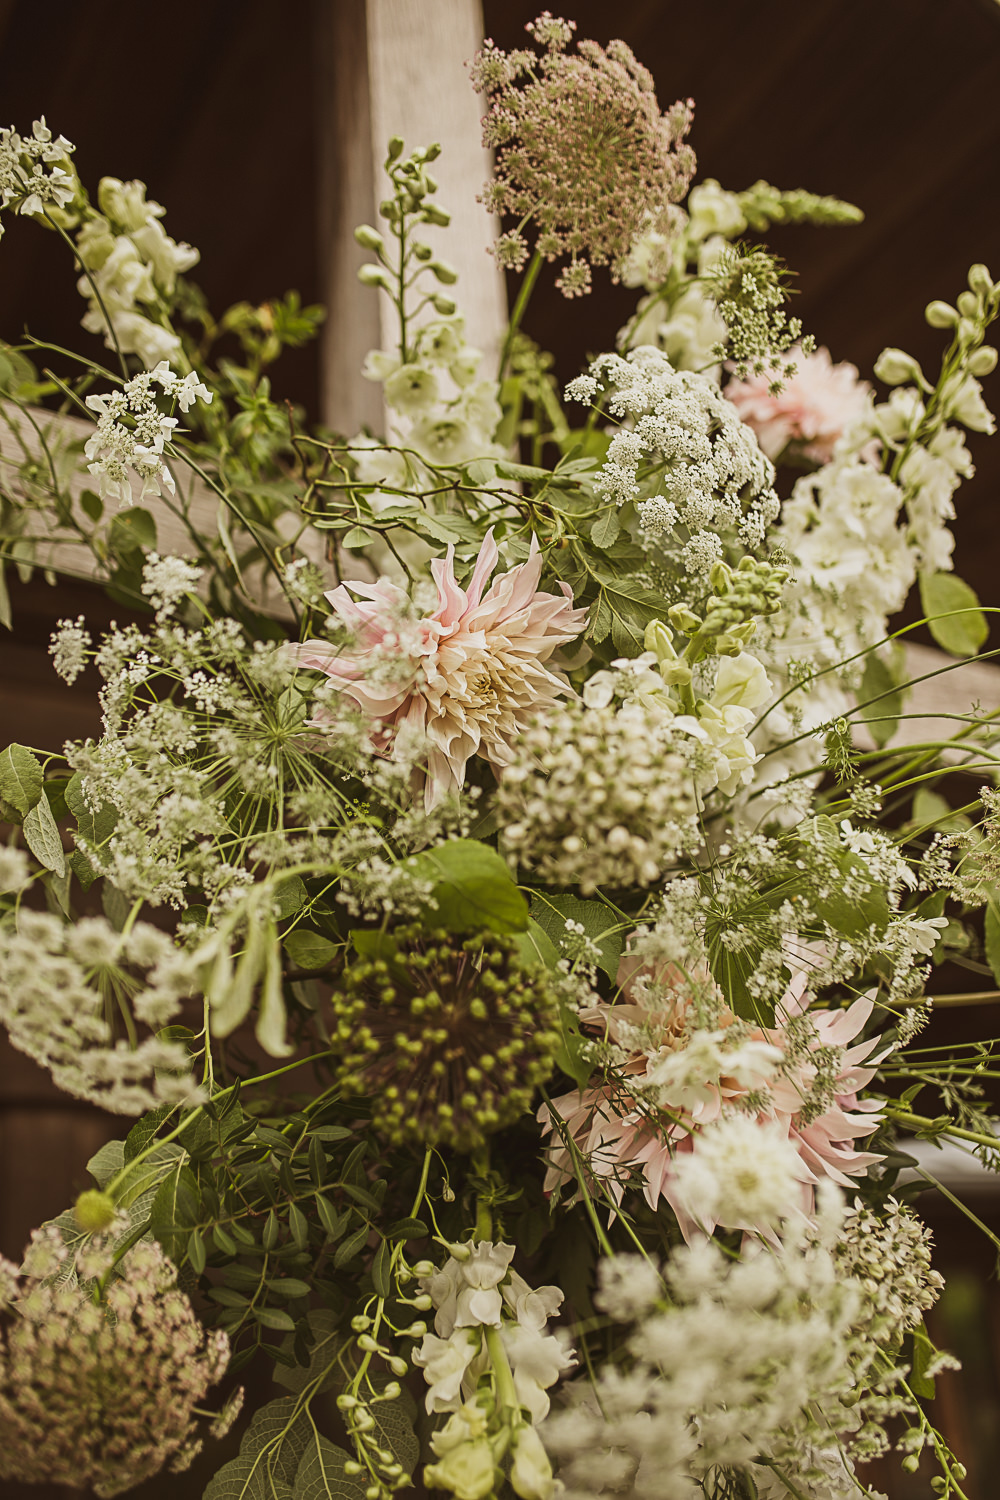 Flower Arrangement Greenery Foliage Blush Small Wedding Ideas The Springles